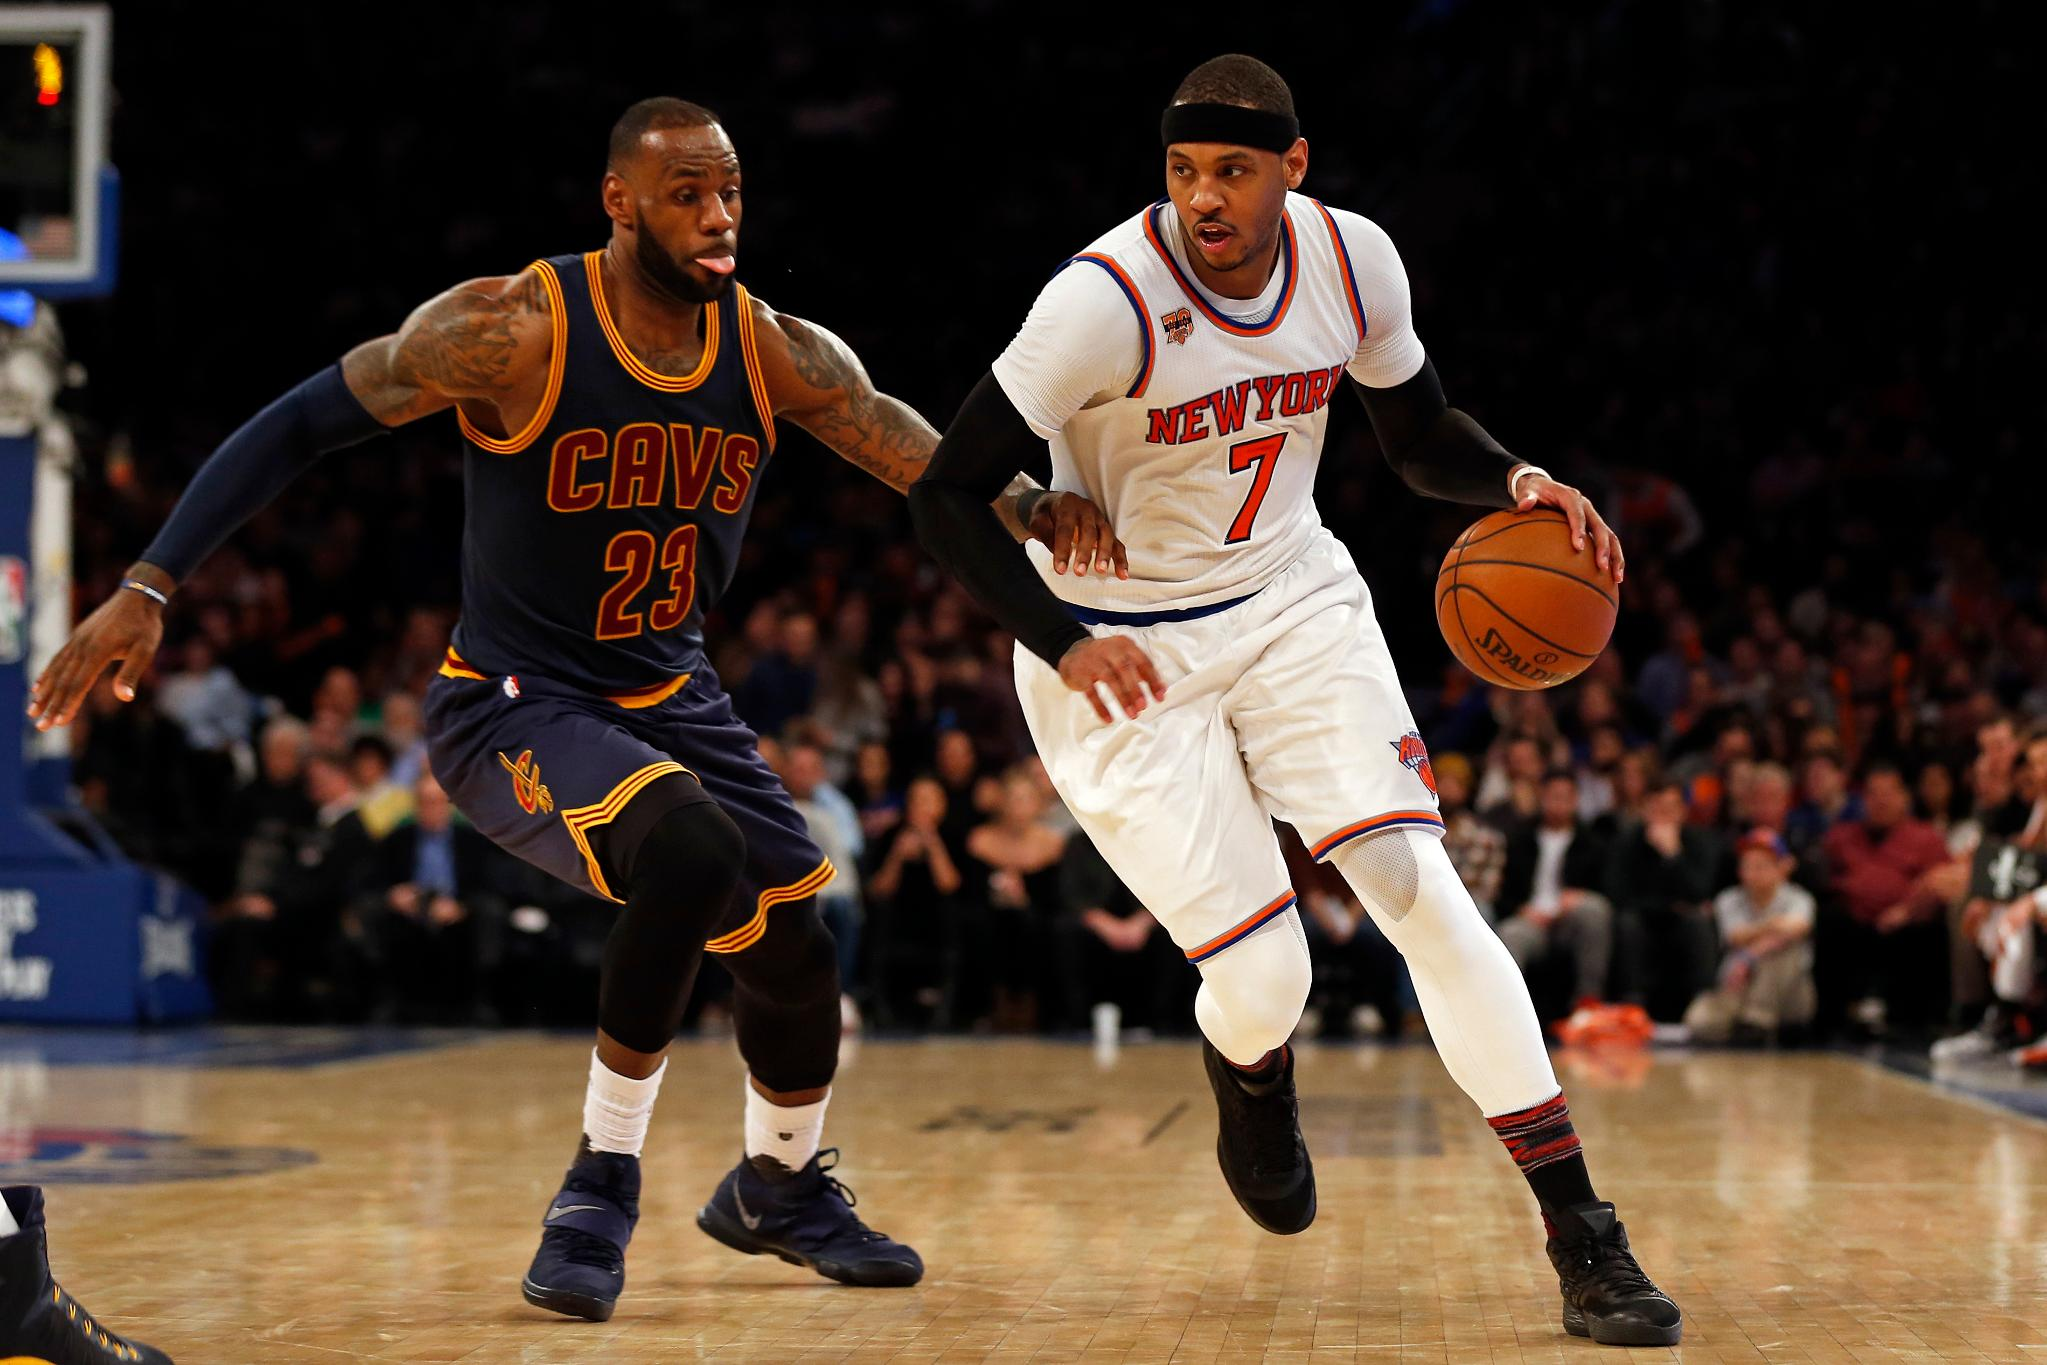 REPORT: Carmelo Anthony willing to accept trade to Cleveland Cavaliers  MORE: https://t.co/FACE9bQMXf https://t.co/dNCYSIuURB